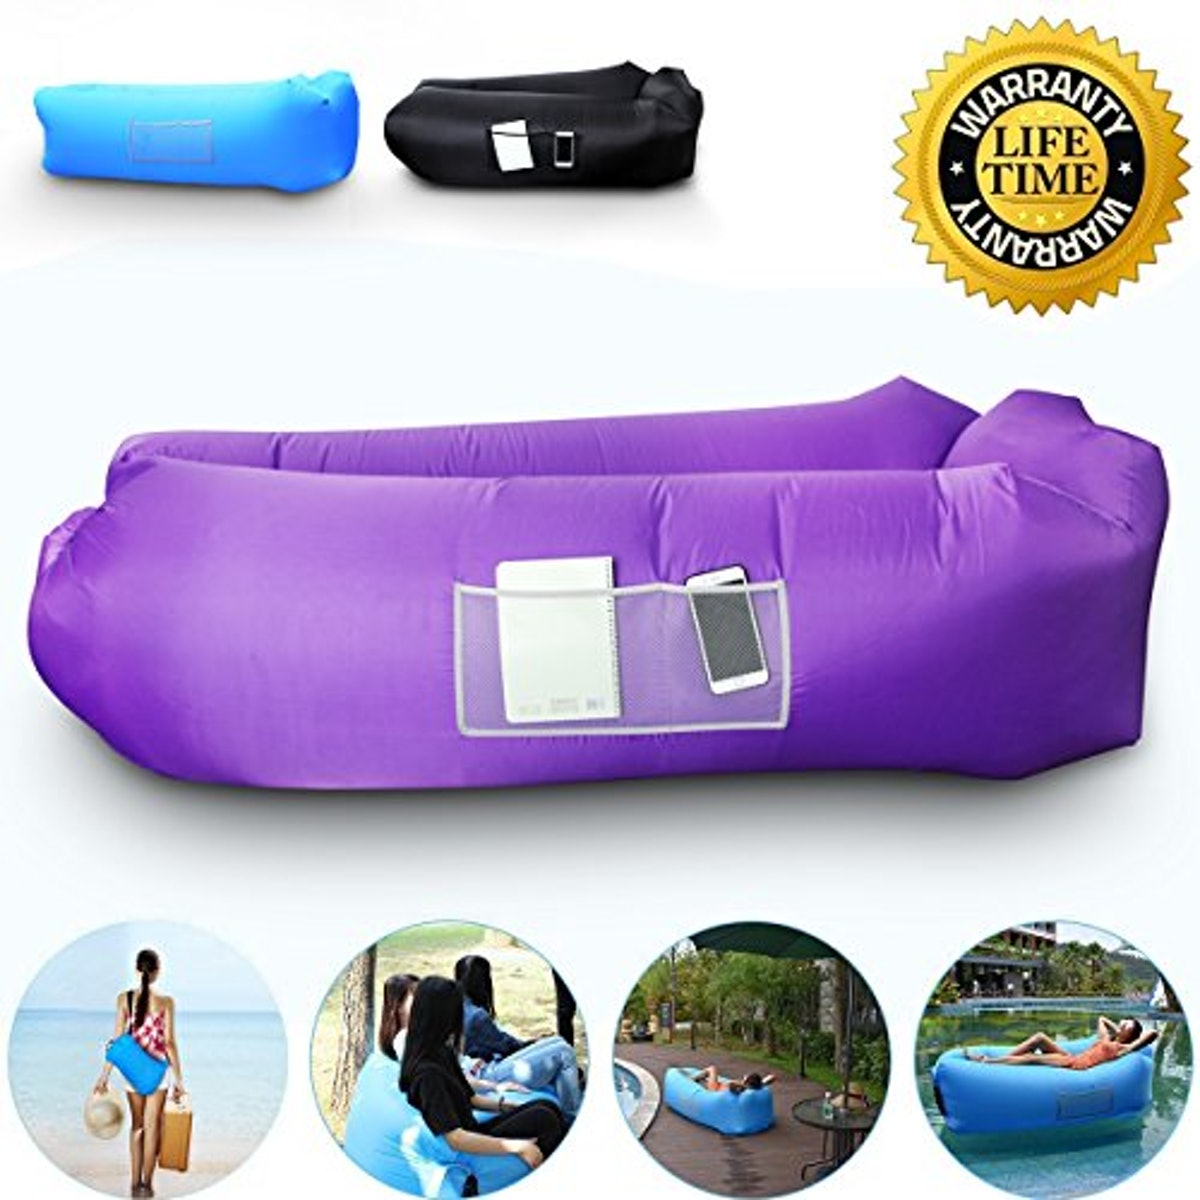 AngLink Outdoor Inflatable Lounger